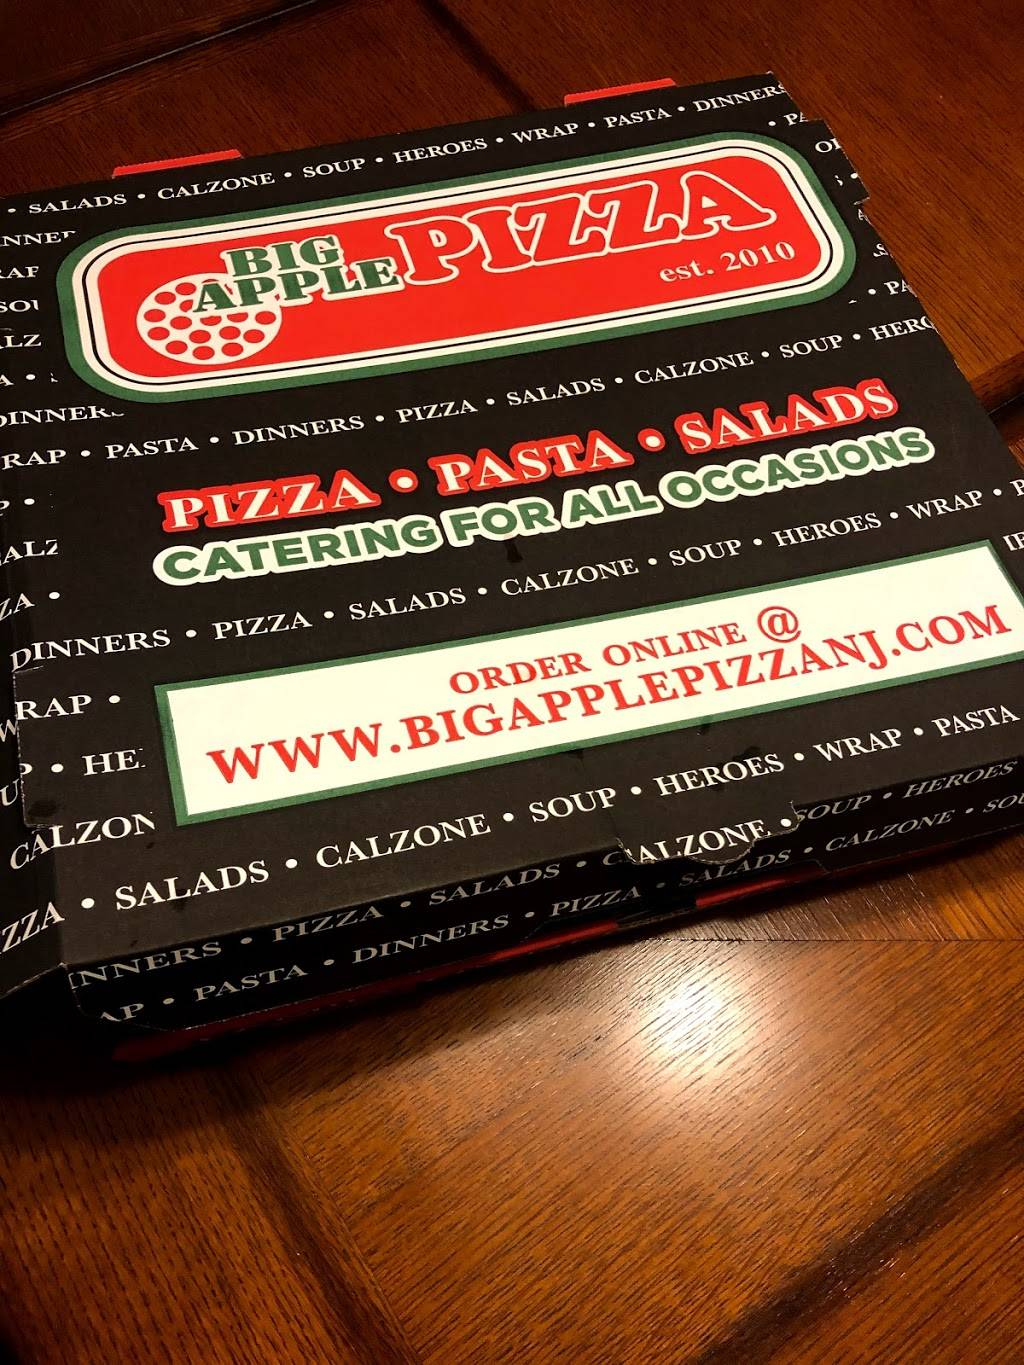 Big Apple Pizza | meal delivery | 700 Boulevard, Kenilworth, NJ 07033, USA | 9082451666 OR +1 908-245-1666